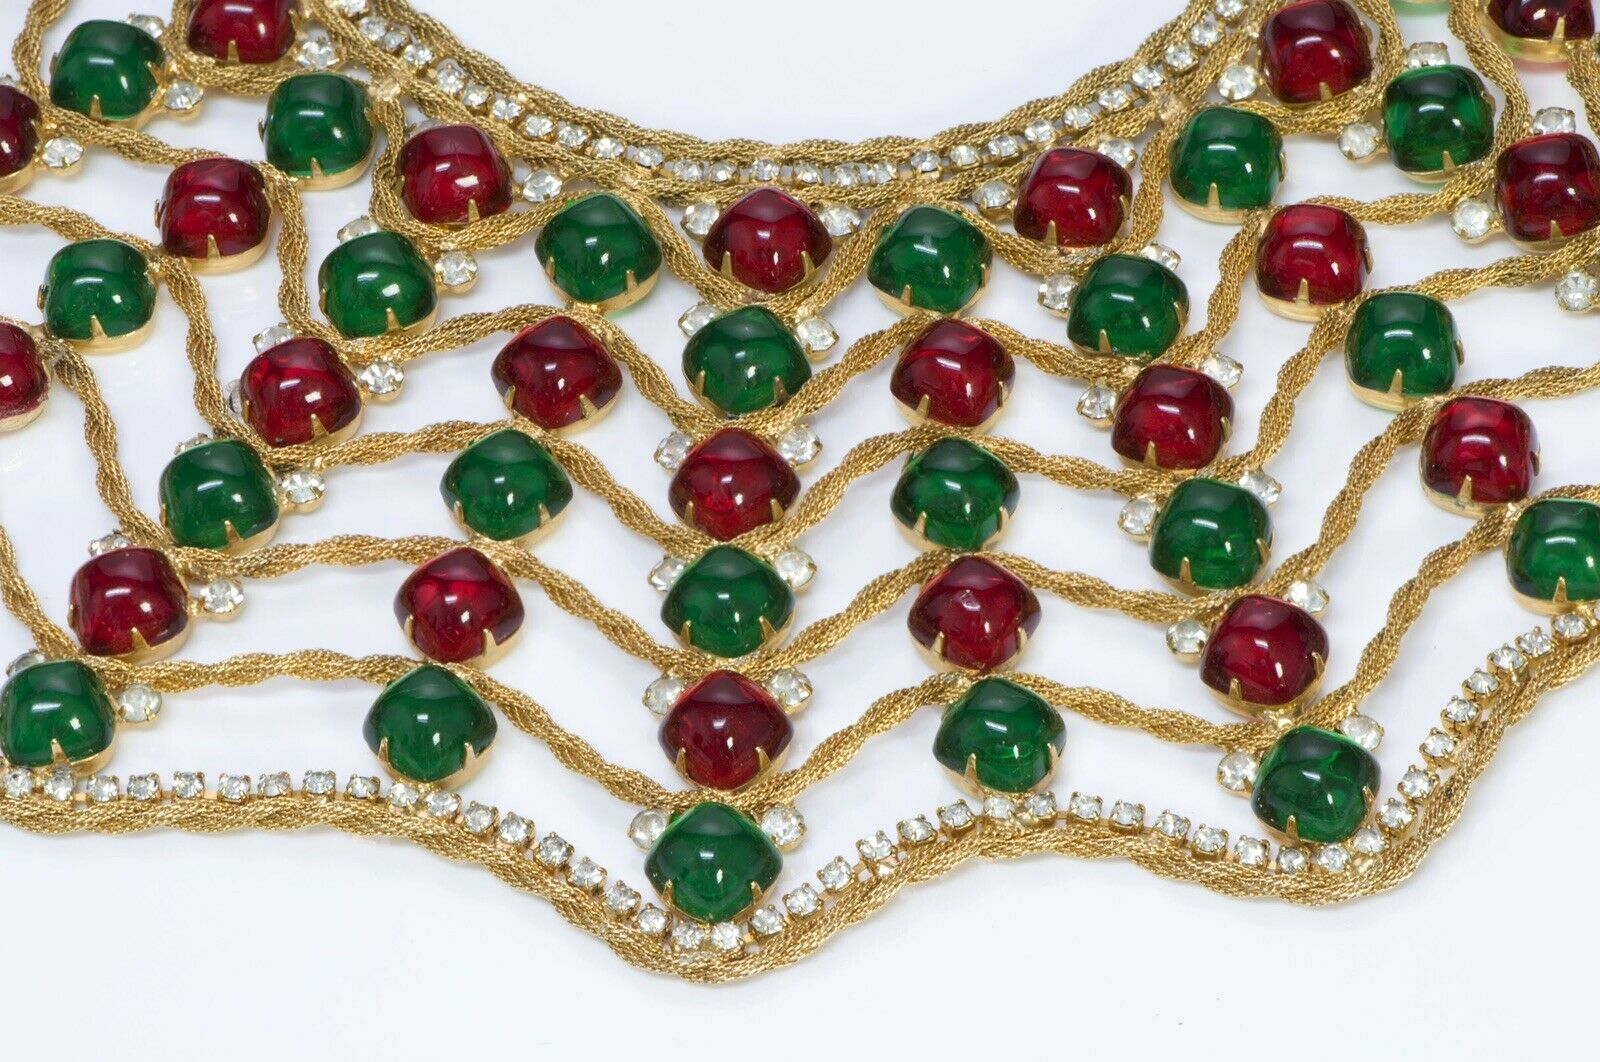 Kenneth Jay Lane KJL 1960's Spider Web Green Red Cabochon Glass Collar Necklace